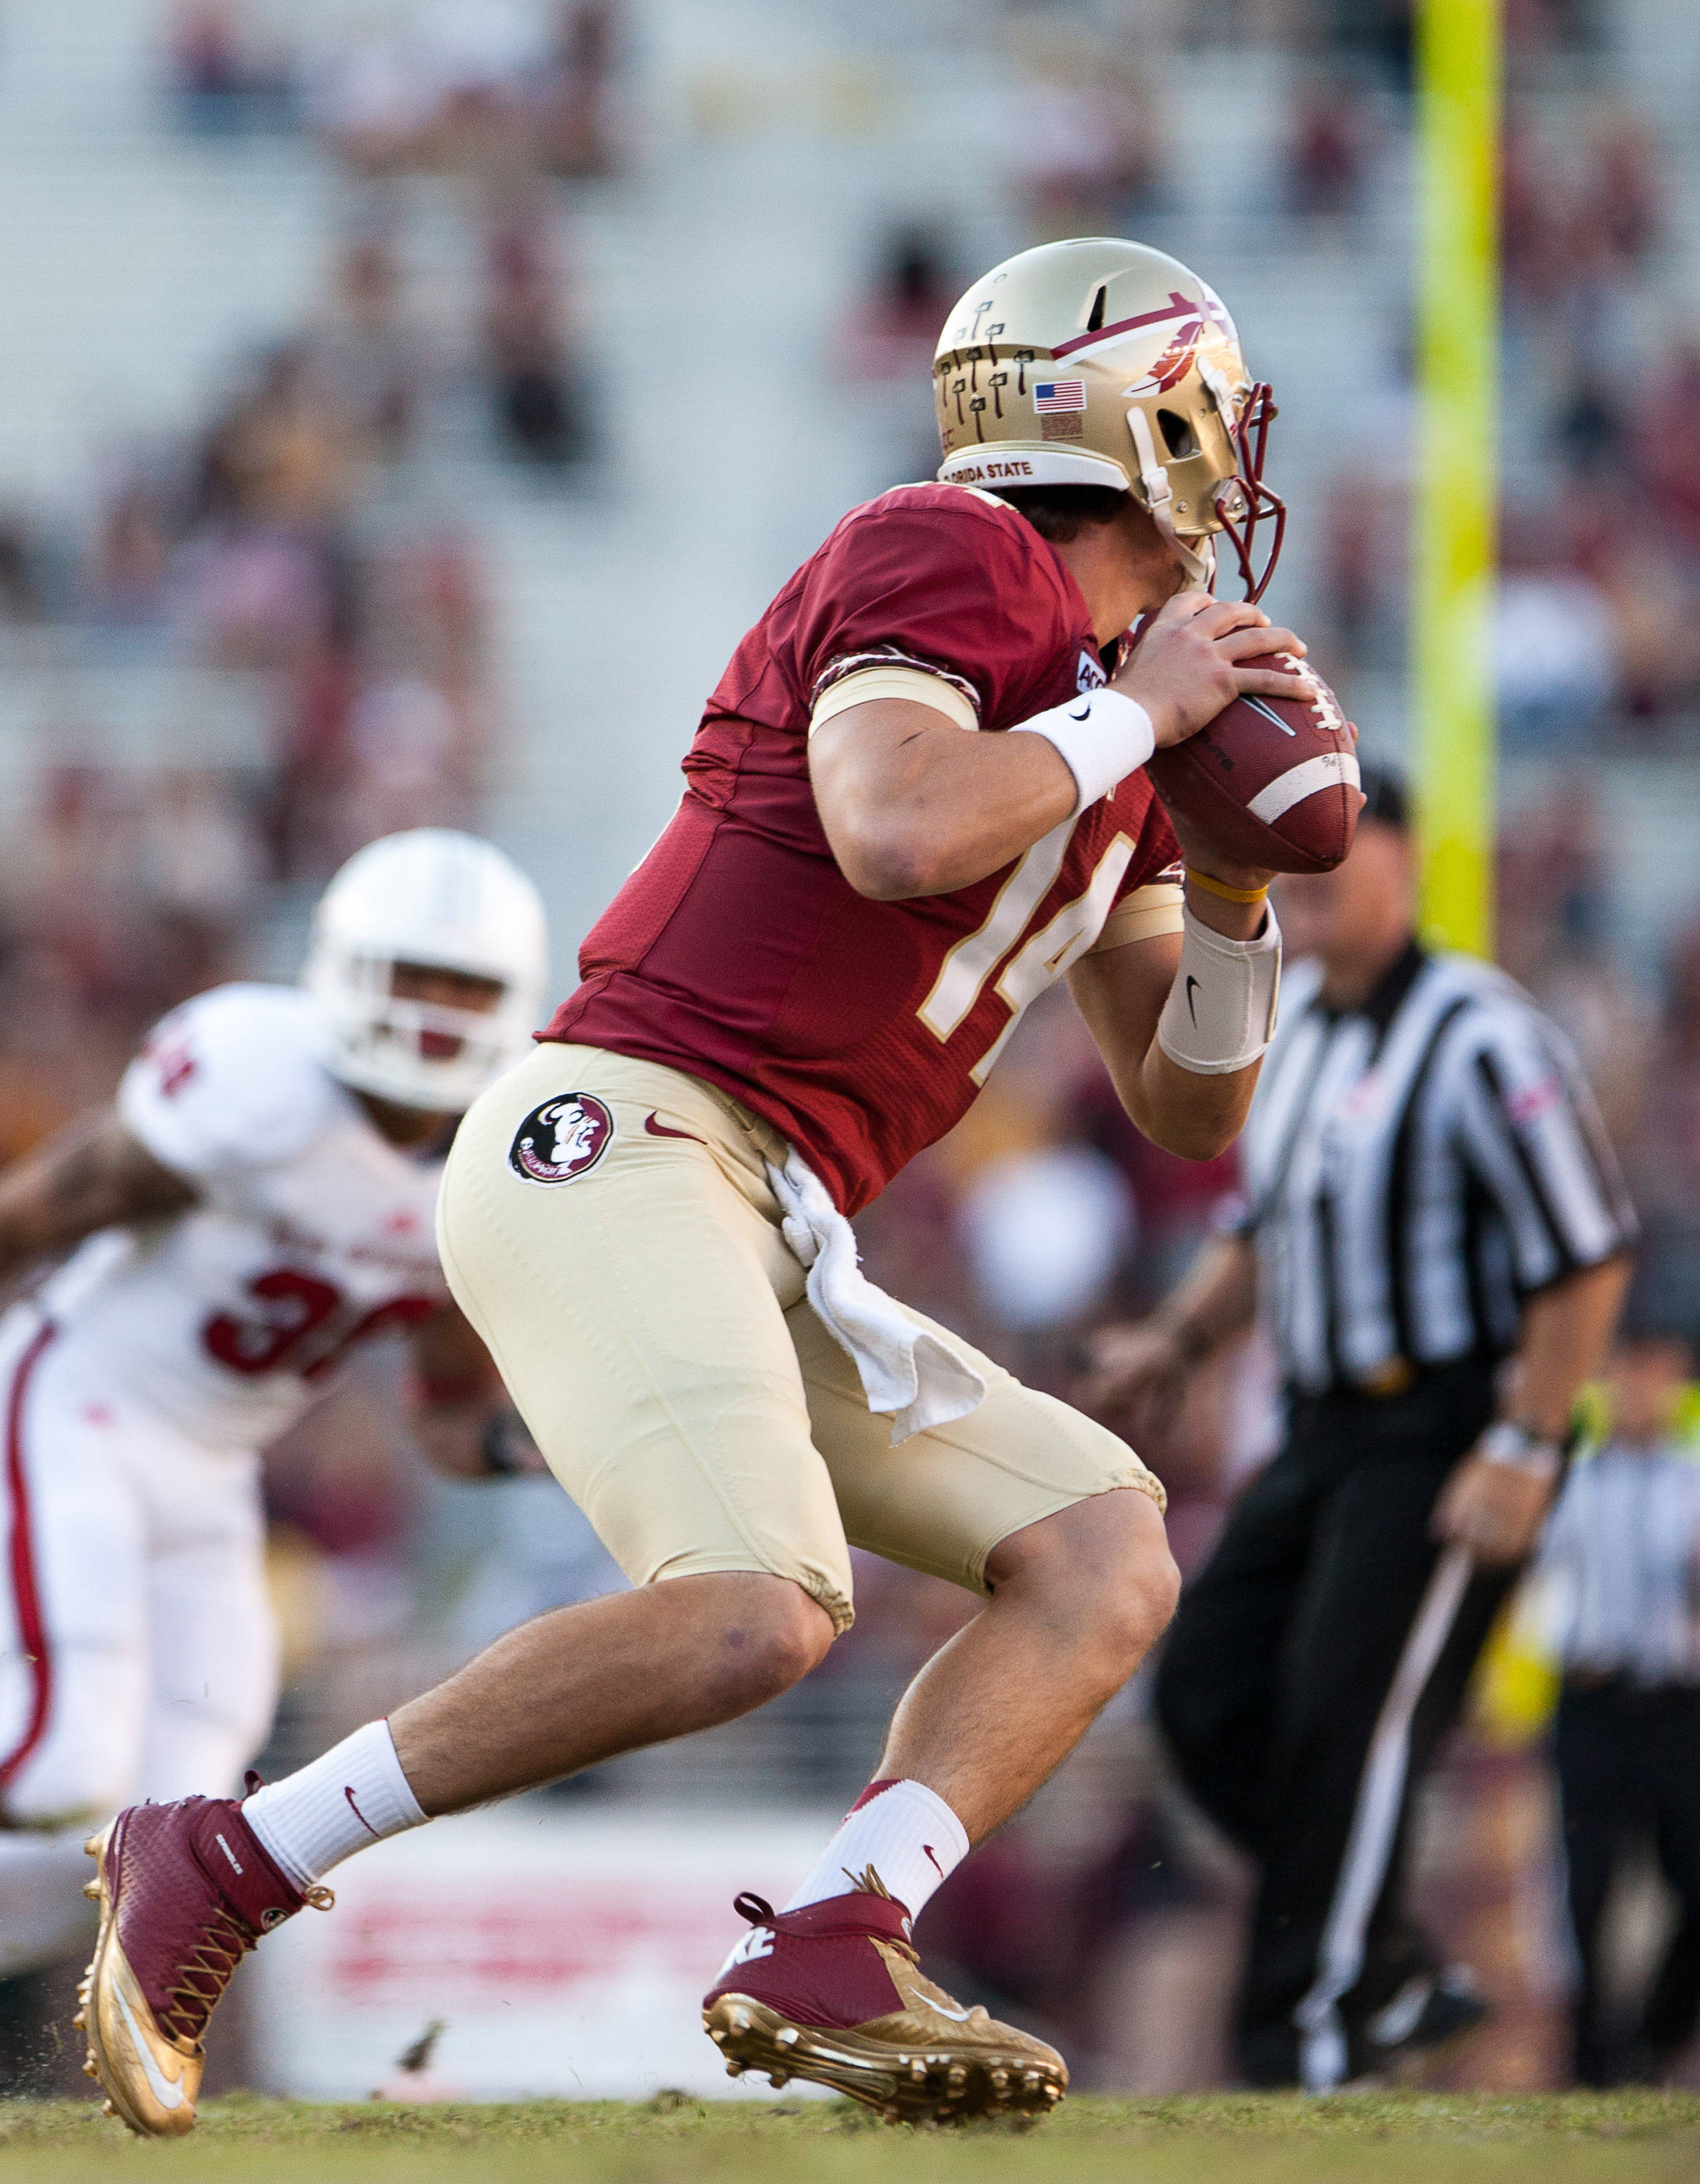 Jacob Coker (14) drops back to pass during FSU Football's 49-17 win over NC State on Saturday, October 26, 2013 in Tallahassee, Fla. Photo by Michael Schwarz.